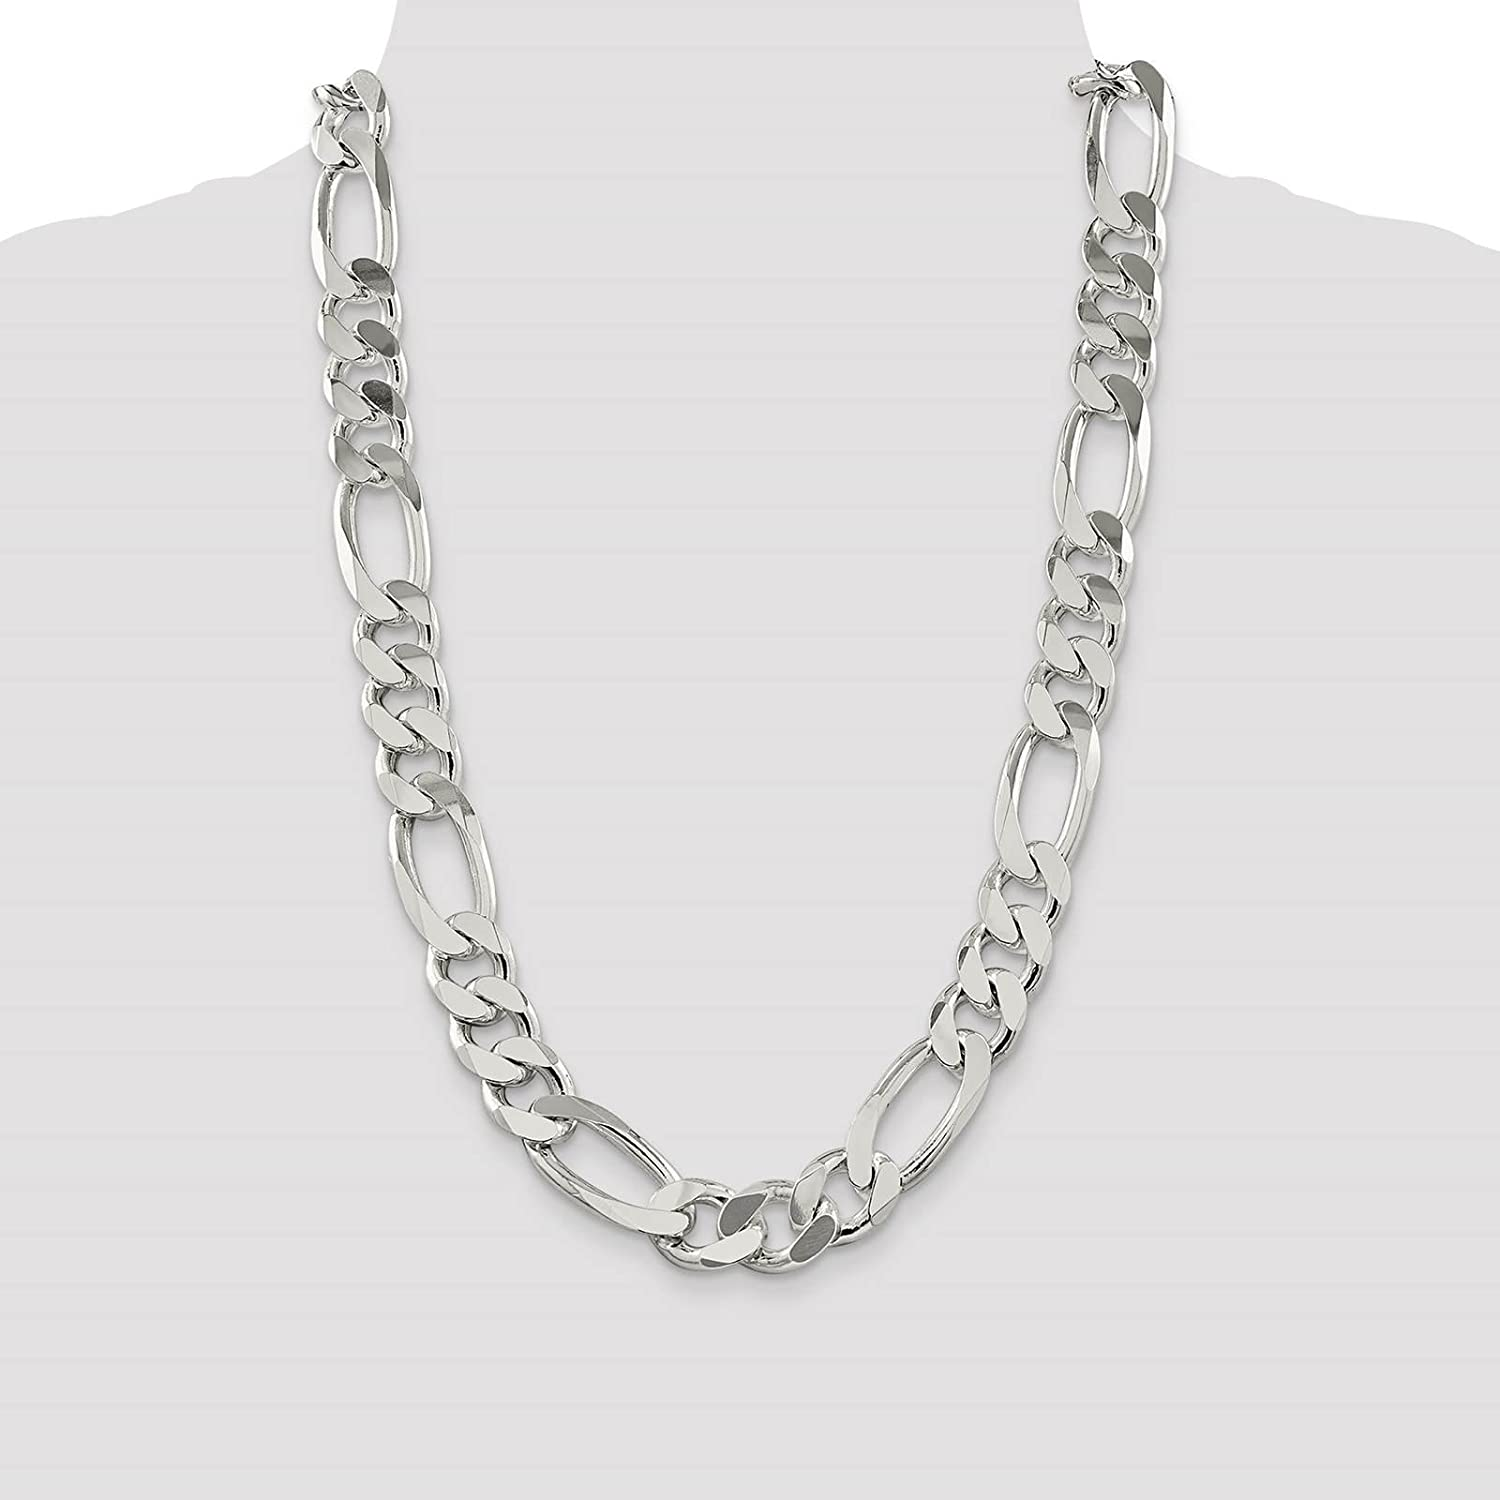 925 Sterling Silver 15mm Polished Figaro Link Chain Necklace 8-24